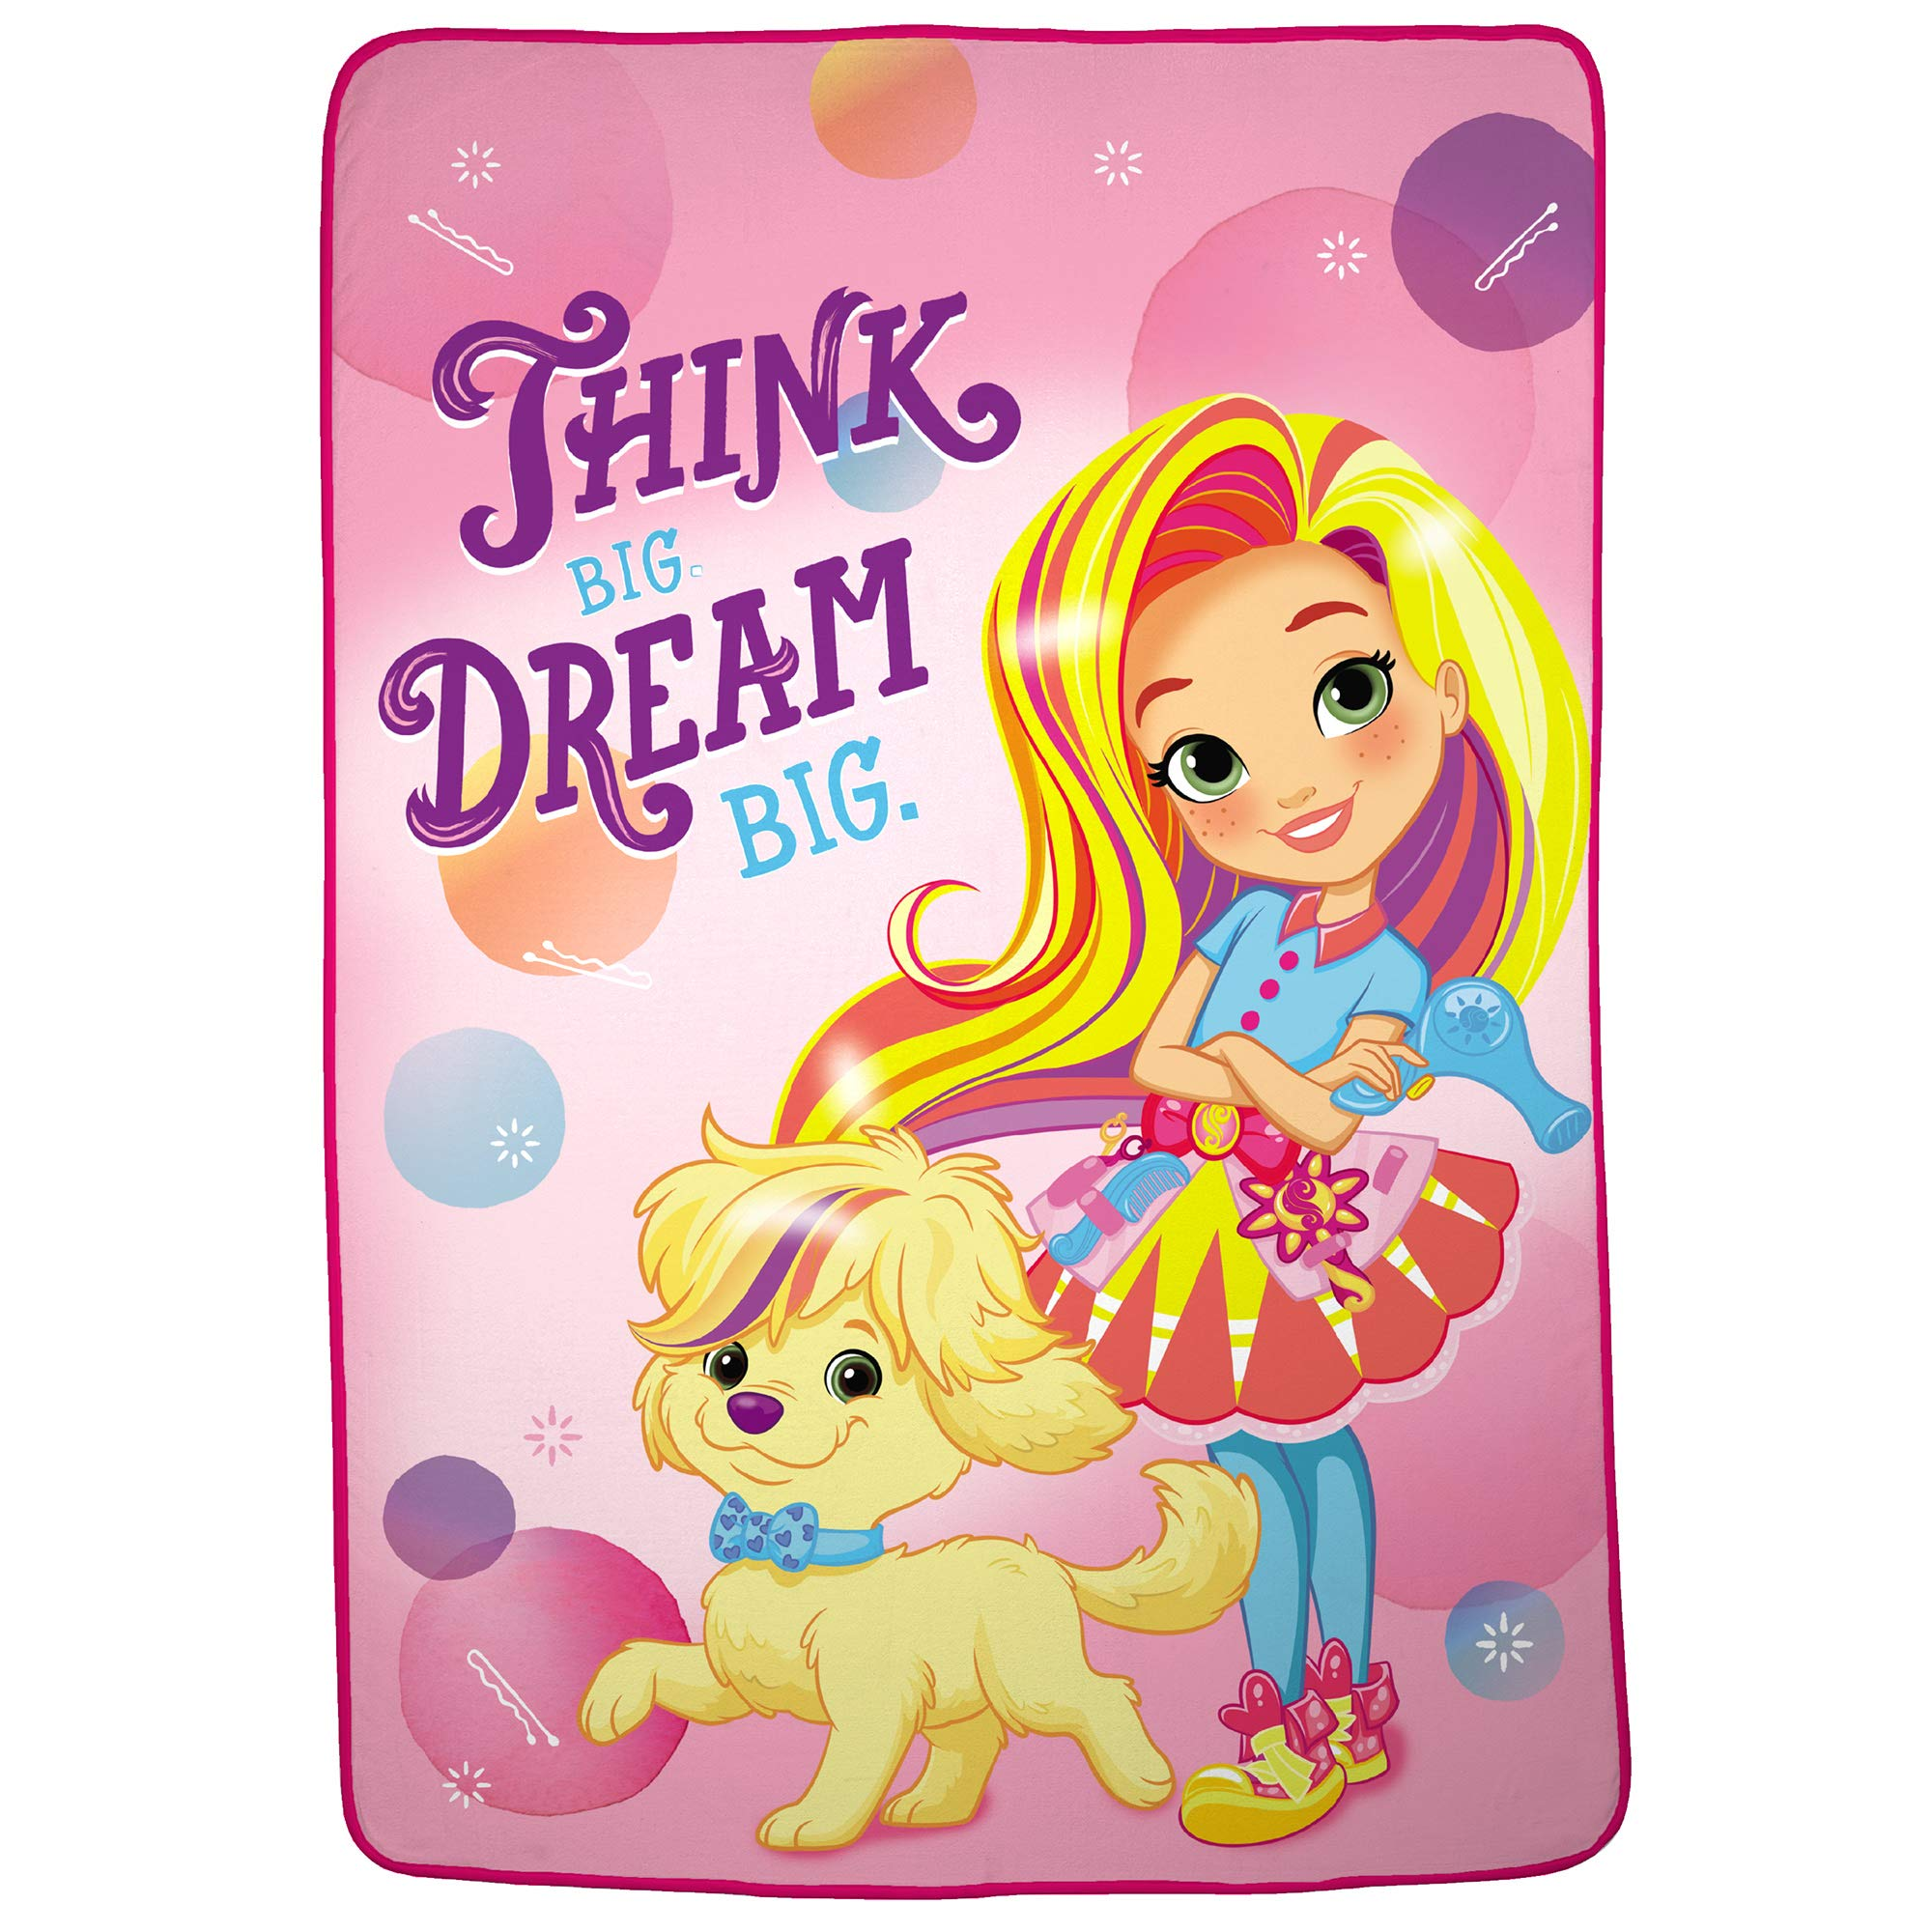 Nickelodeon Sunny Day Soft Plush Microfiber Kids Bedding Blanket, Twin/Full Size 62'' x 90'', Pink by Nickelodeon